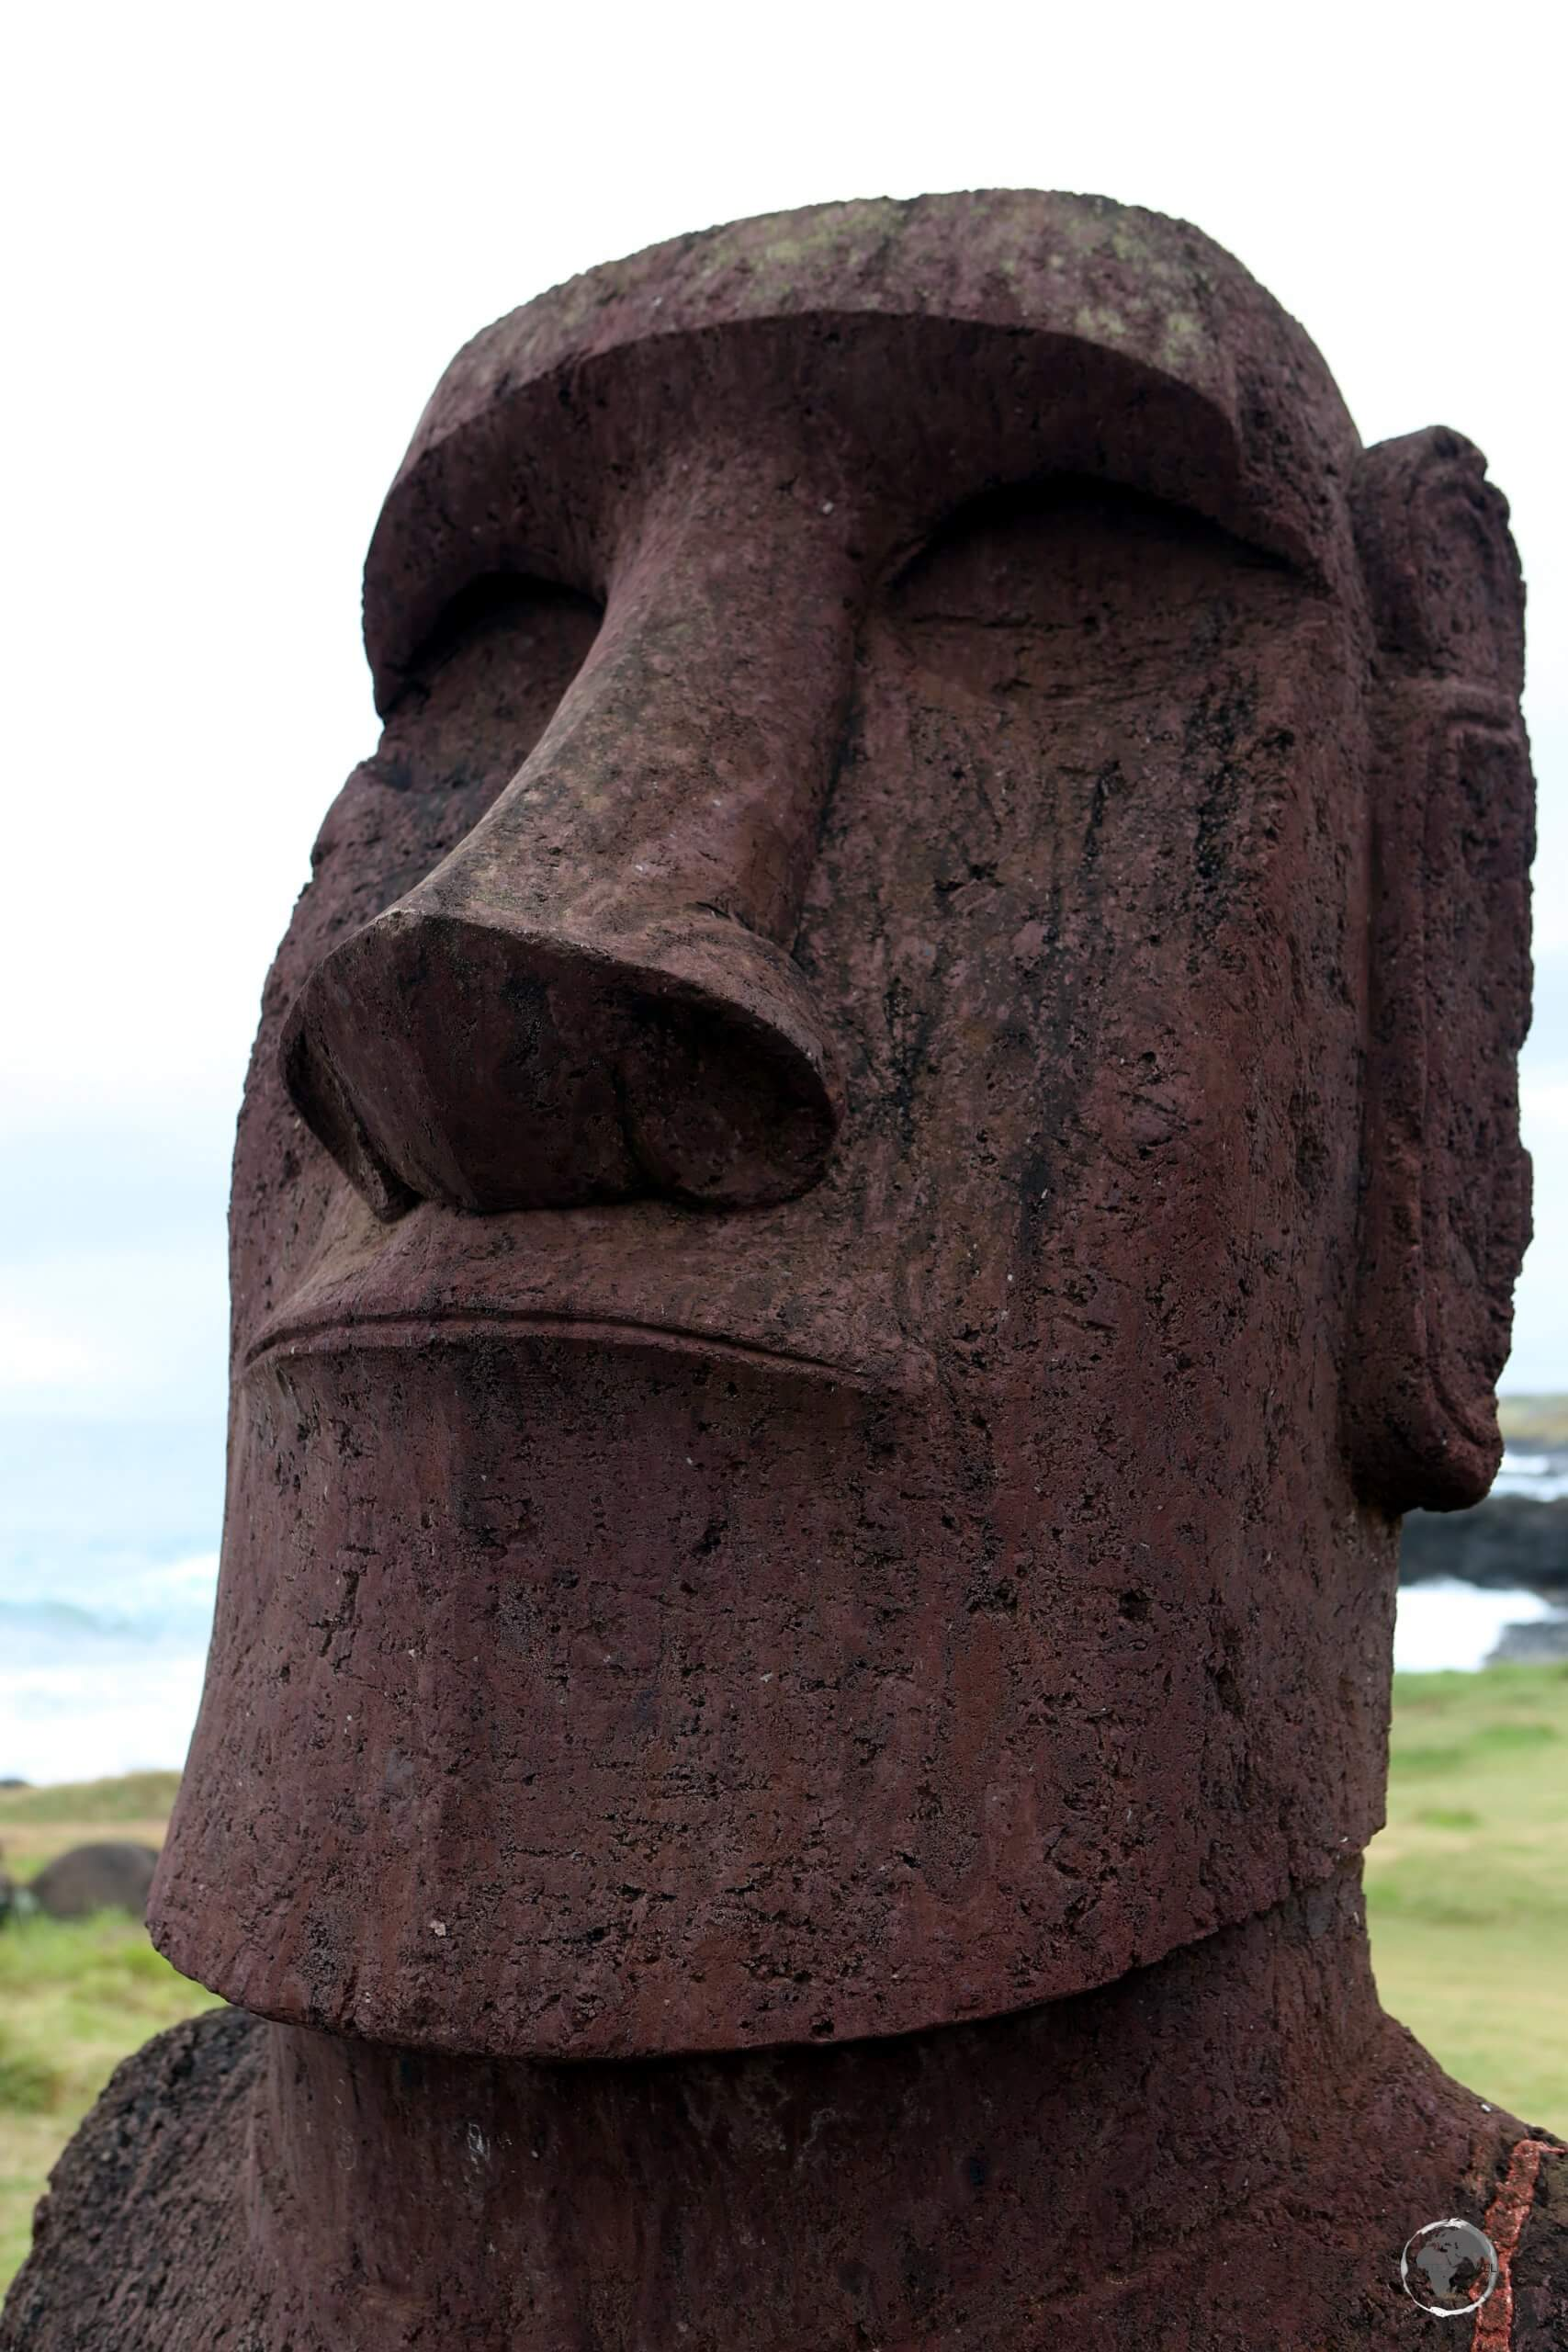 A large moai, with a well-chiselled jaw, overlooks Easter Island.